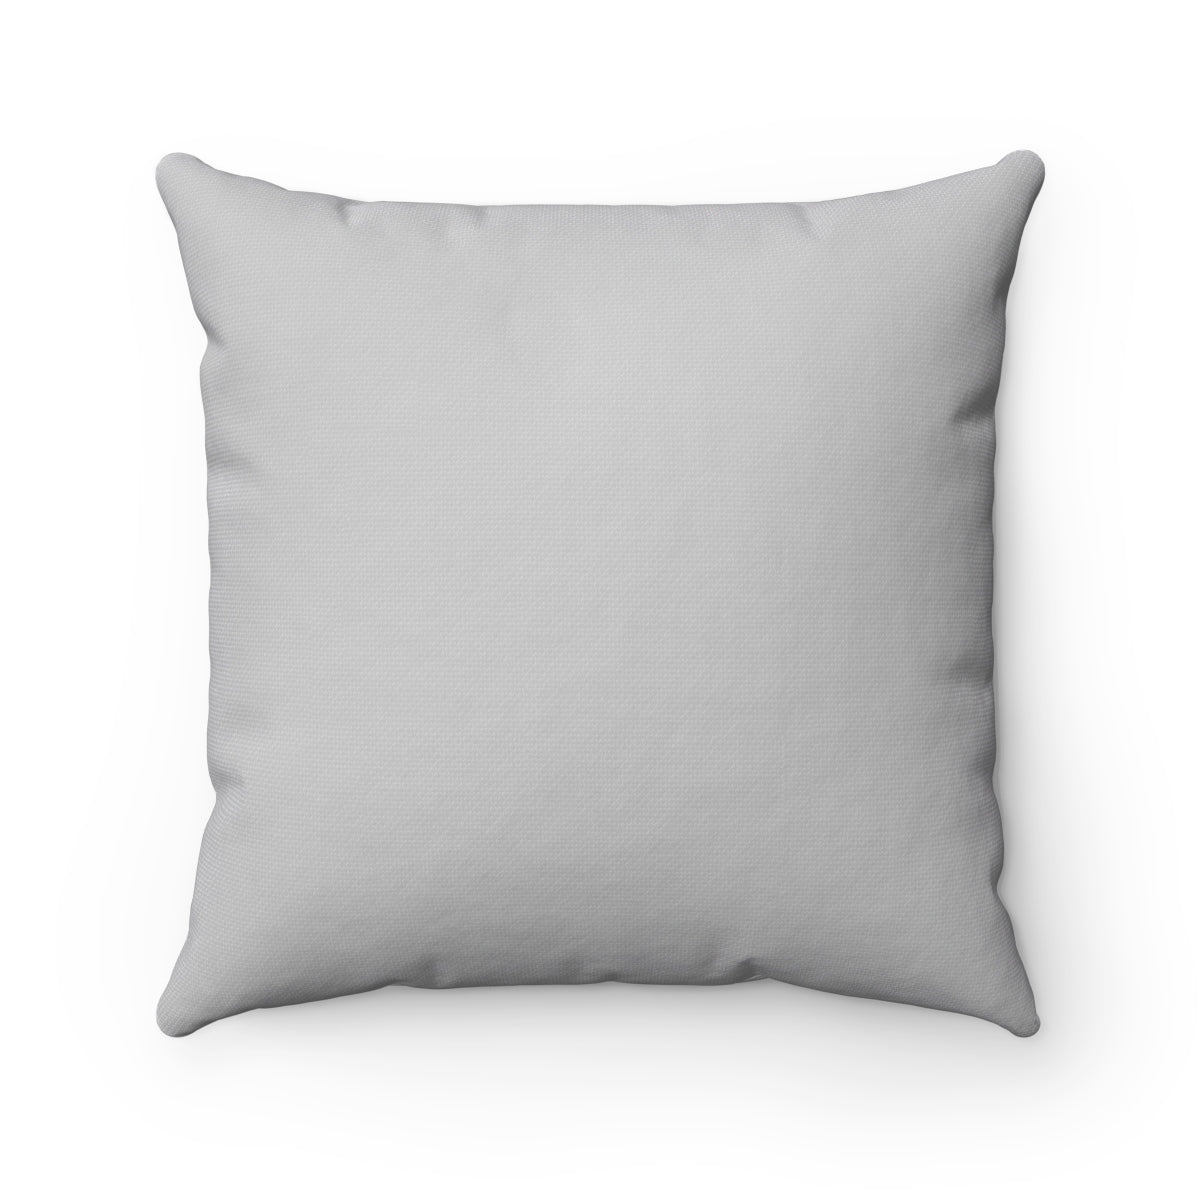 Uneasy Spun Polyester Square Pillow